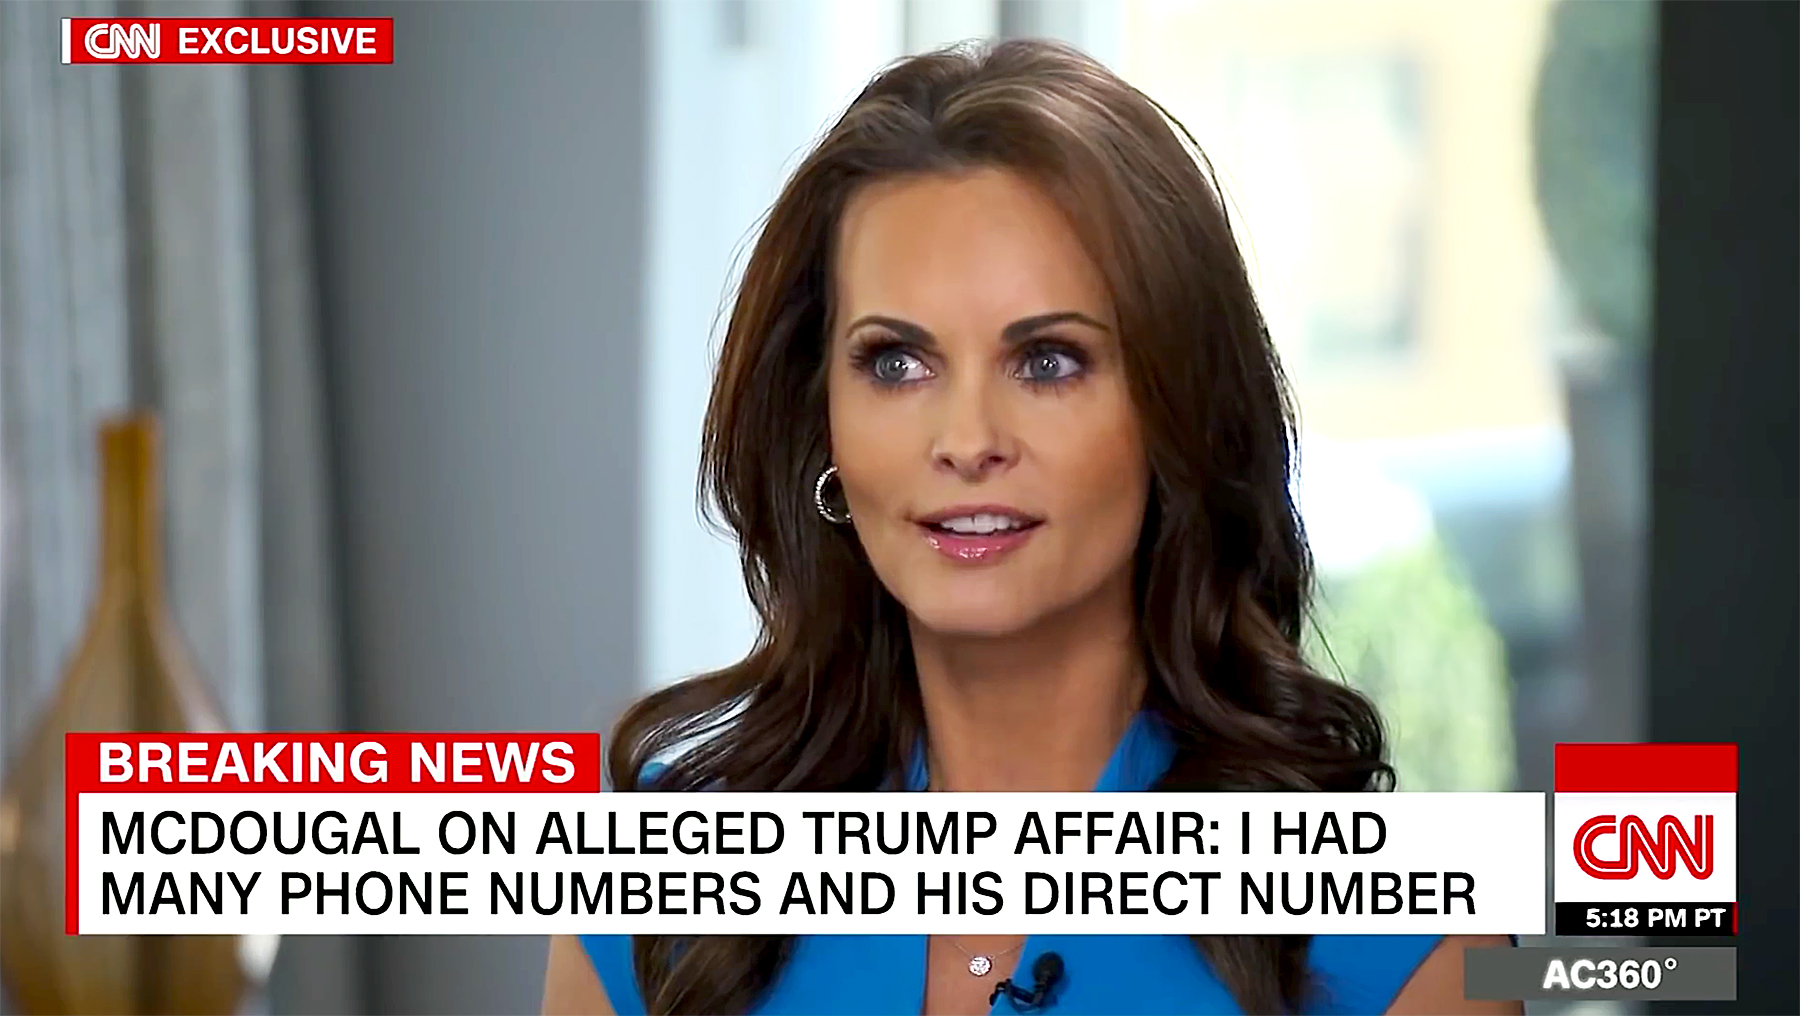 Trump tried to pay me after sex, says ex-Playboy model